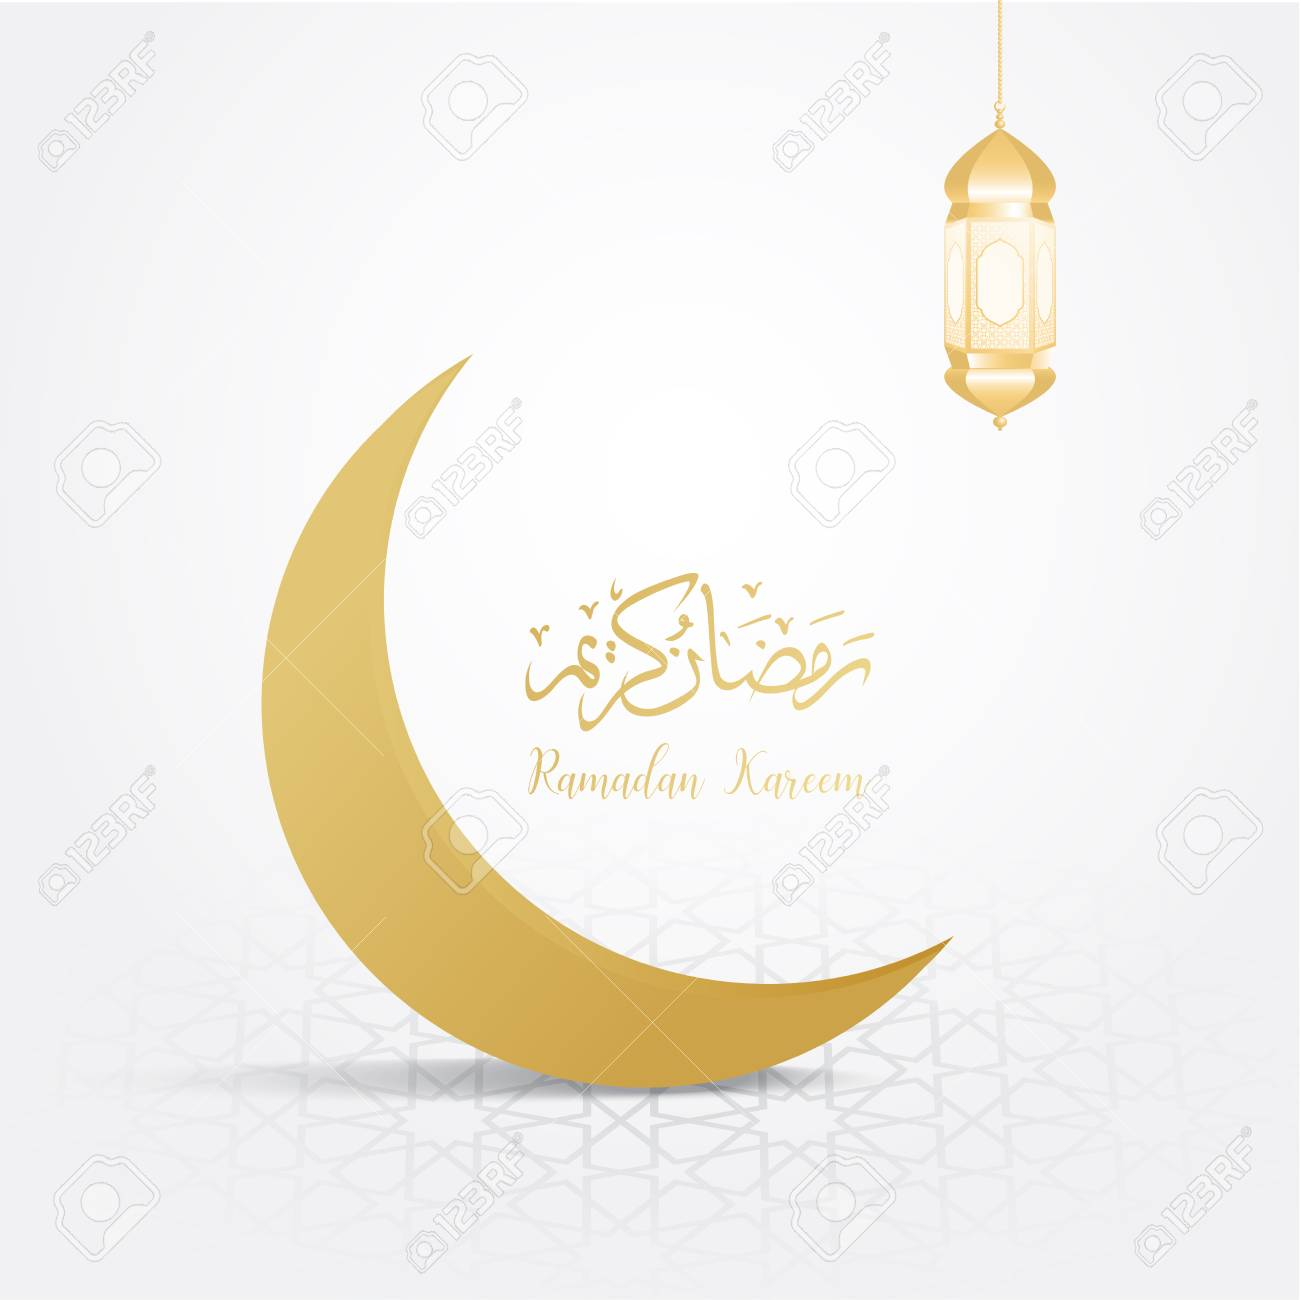 ramadan backgrounds crescent moon vector with arabic pattern royalty free cliparts vectors and stock illustration image 101078068 ramadan backgrounds crescent moon vector with arabic pattern